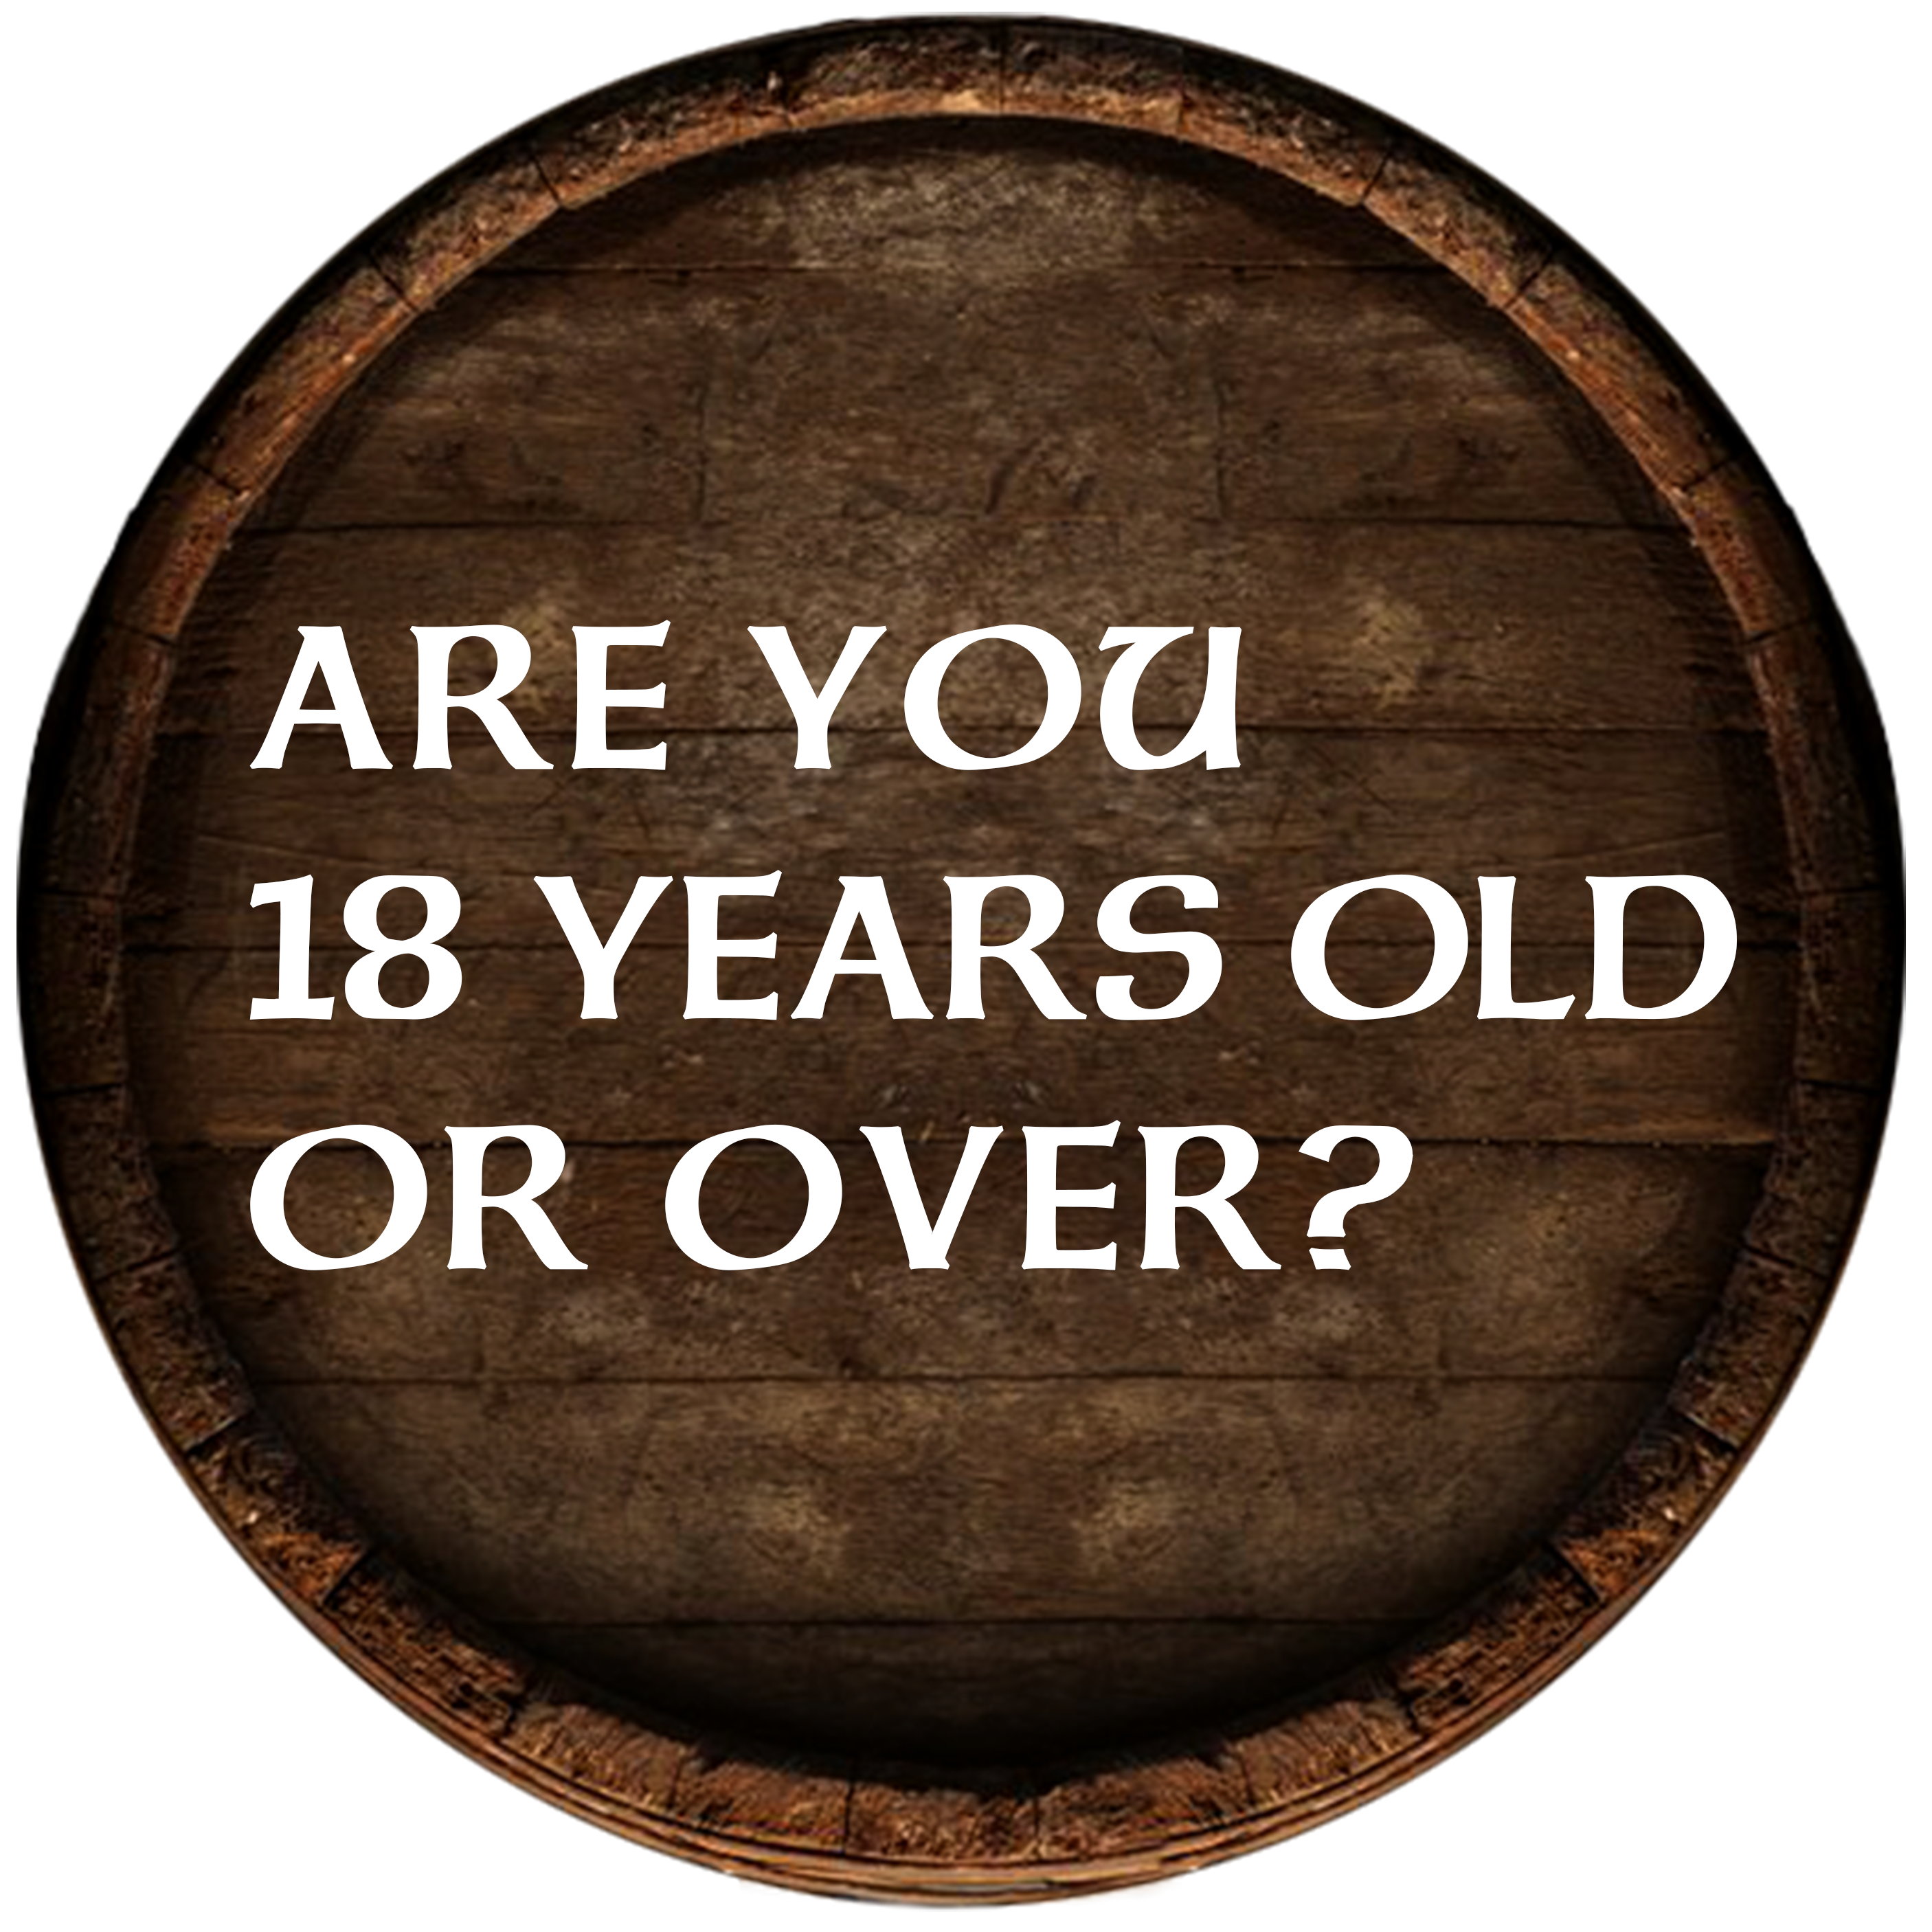 Are you 18 years old or over?